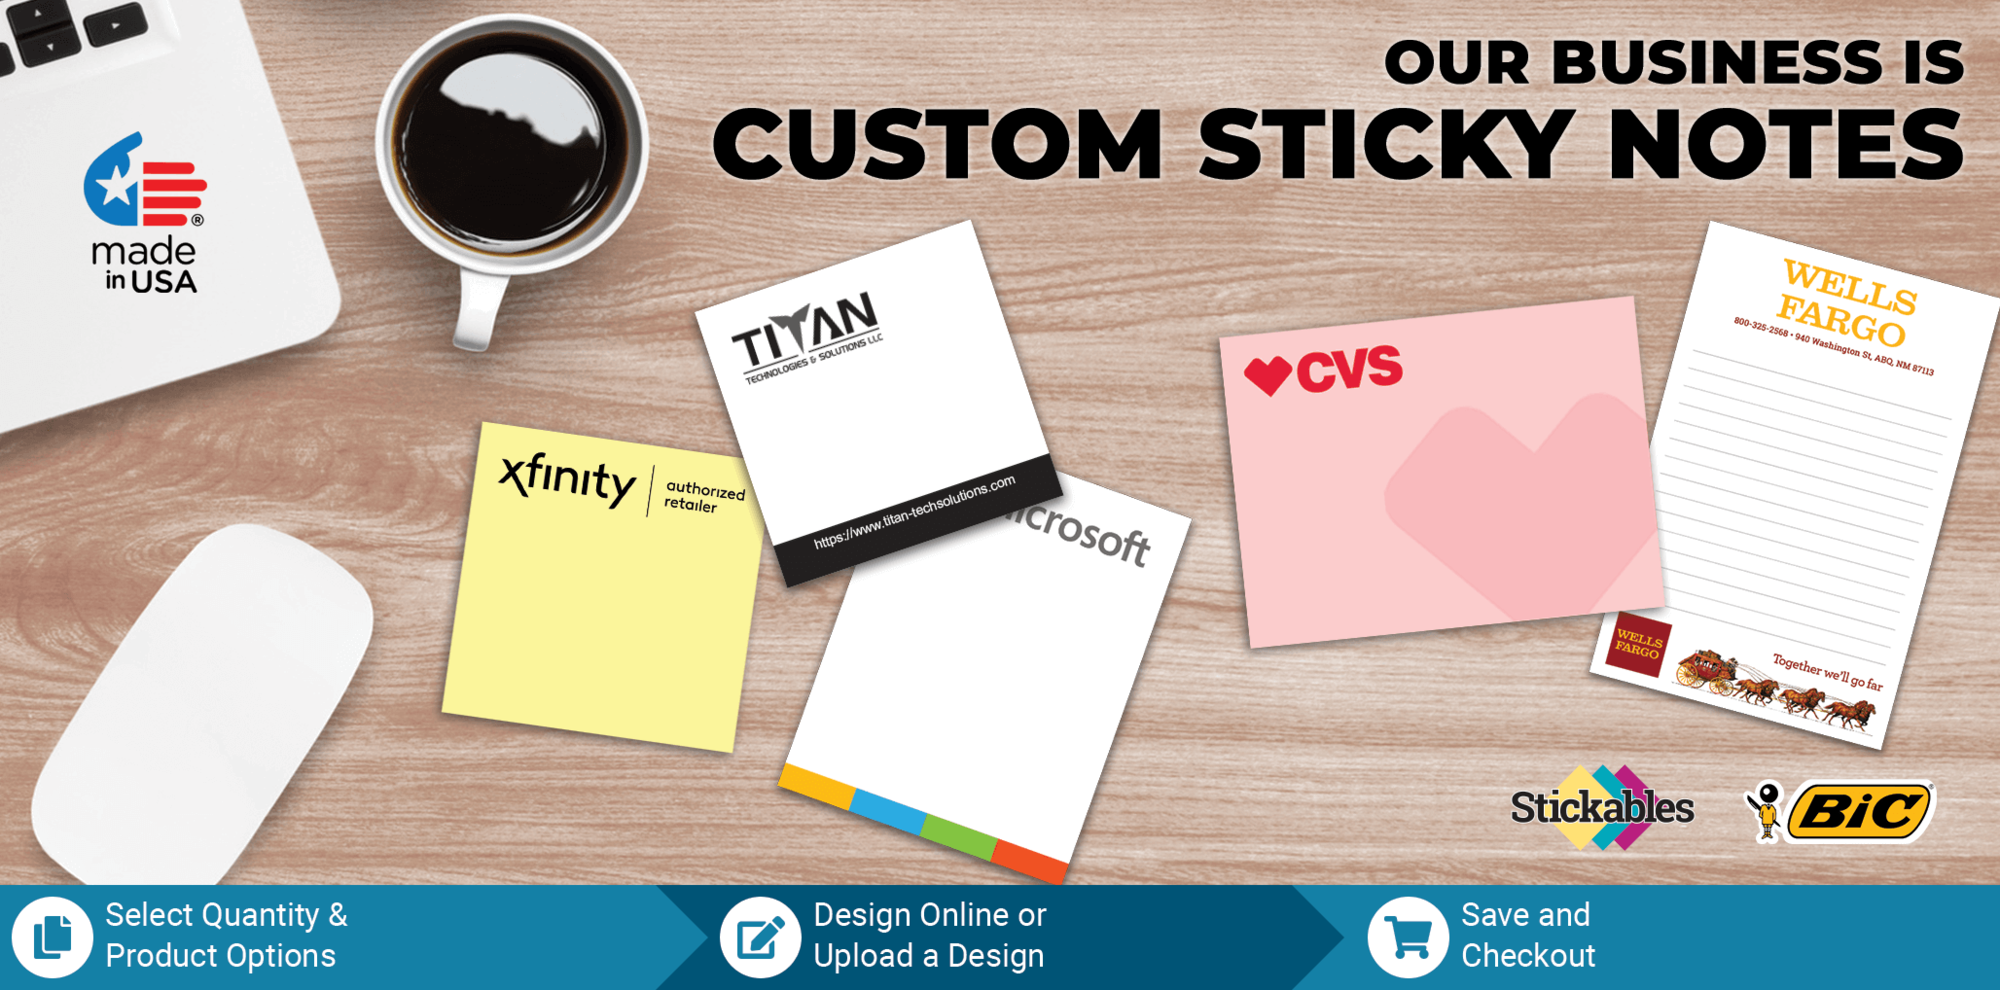 https://printpps.com/images/products_gallery_images/Custom-Sticky-Notes_Product-Page-Banner55.png